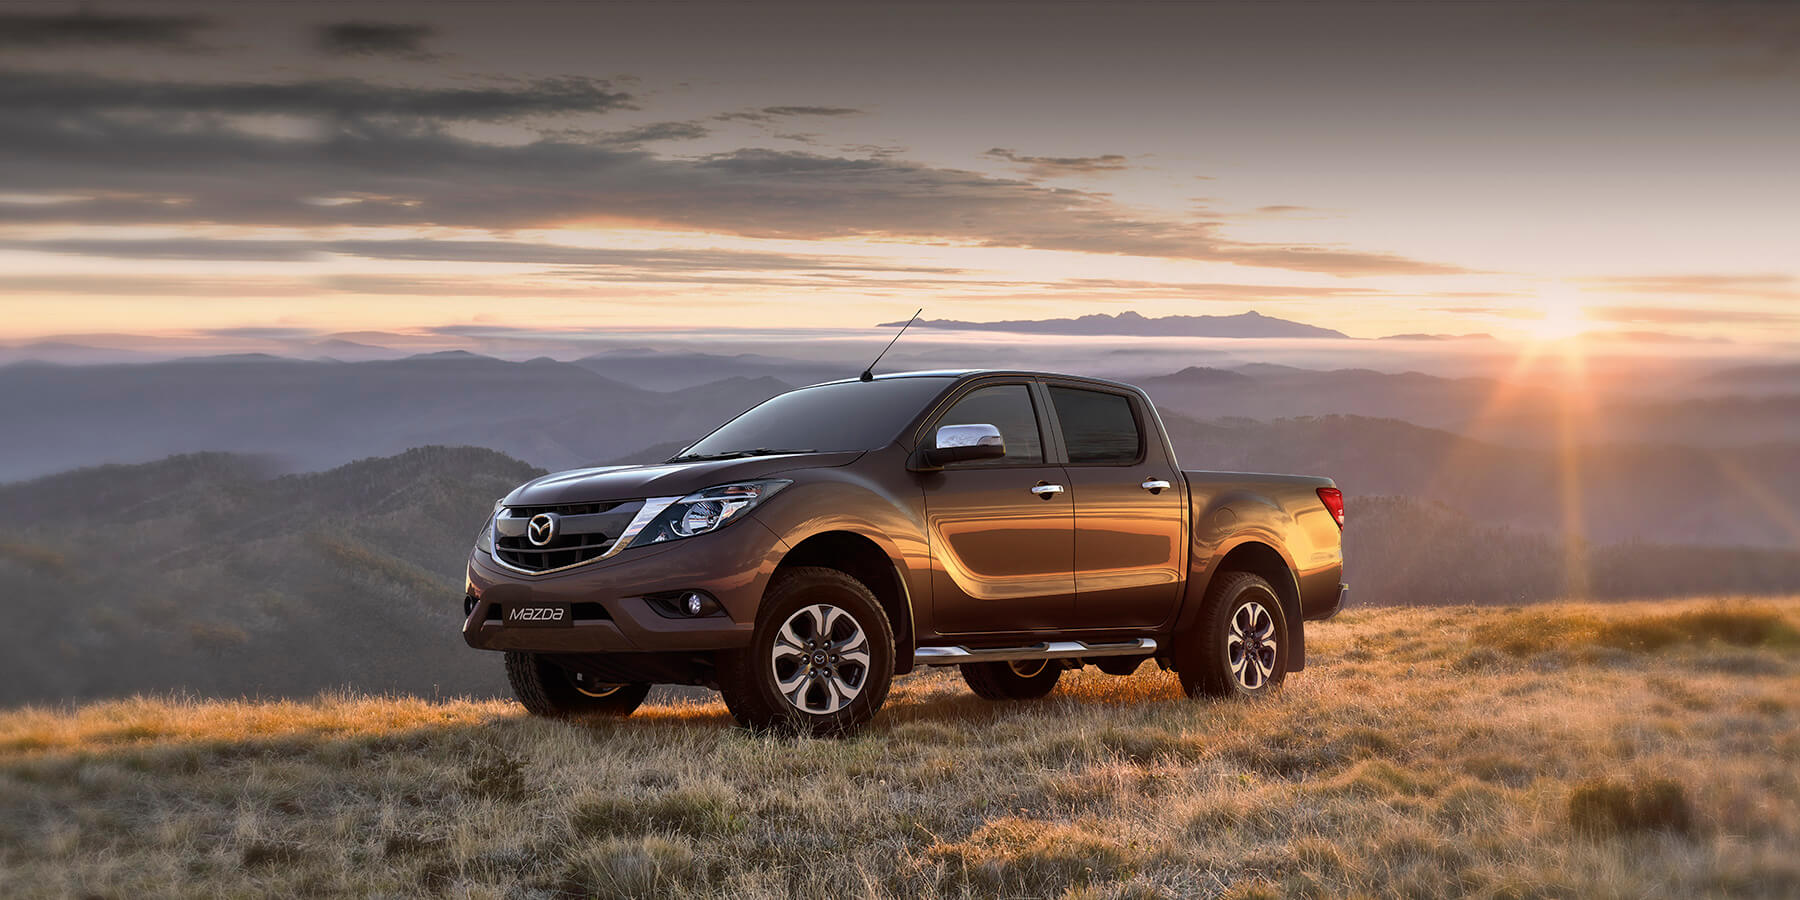 Mazda Mazda BT-50 Doble Cabina 3.2 SDX High 6AT 4x4 Diesel